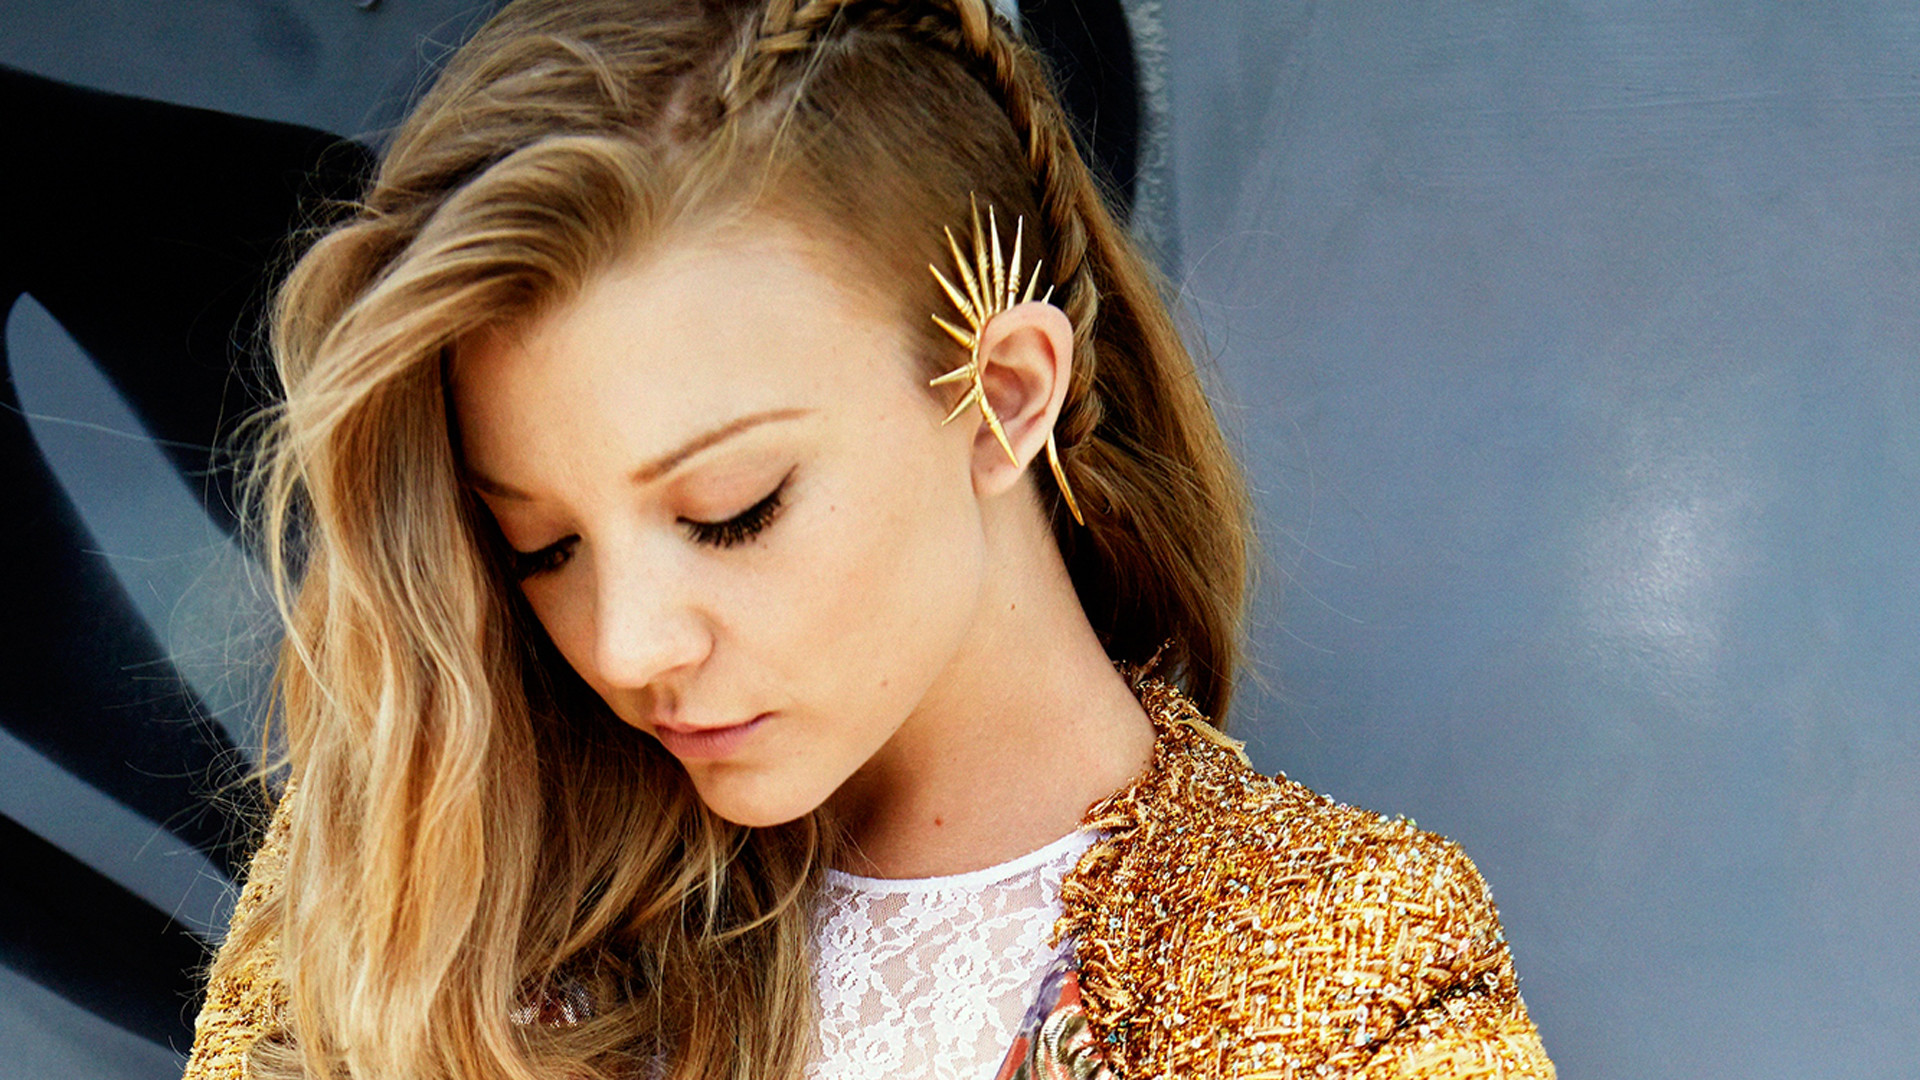 Res: 1920x1080, HD Quality Wallpaper | Collection: Celebrity,  Natalie Dormer